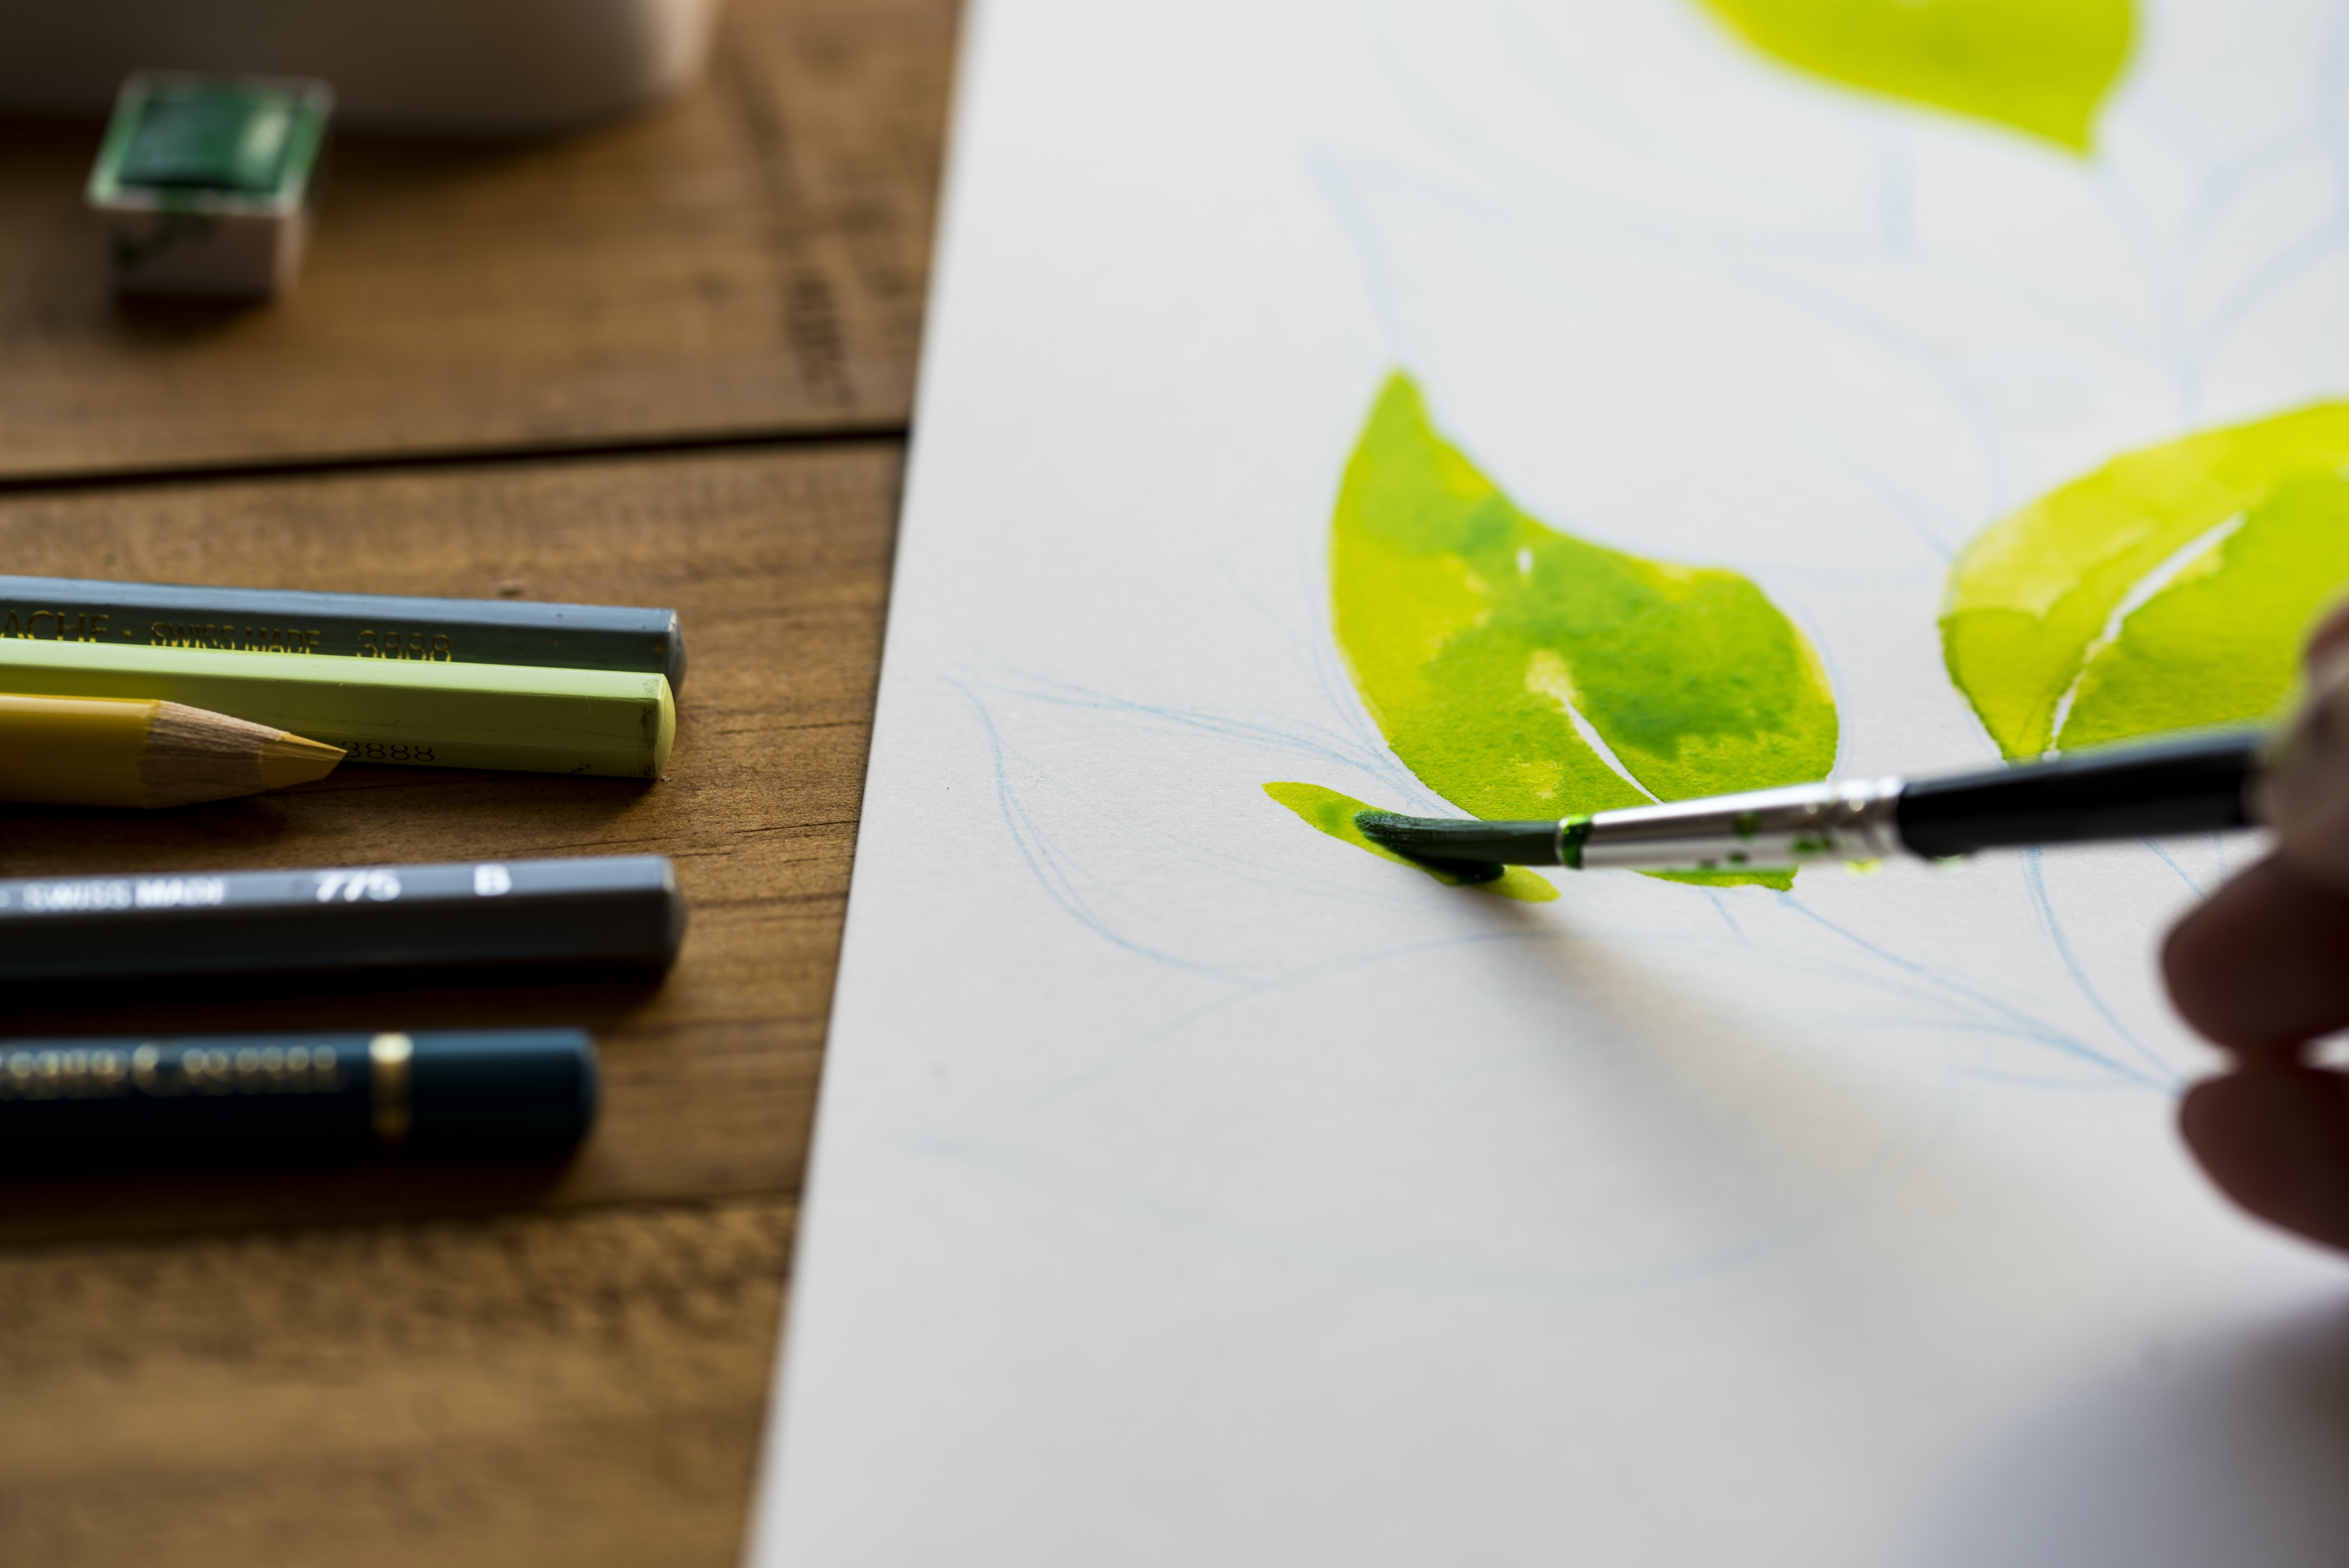 A person paints leaves on a piece of paper on a wooden desk